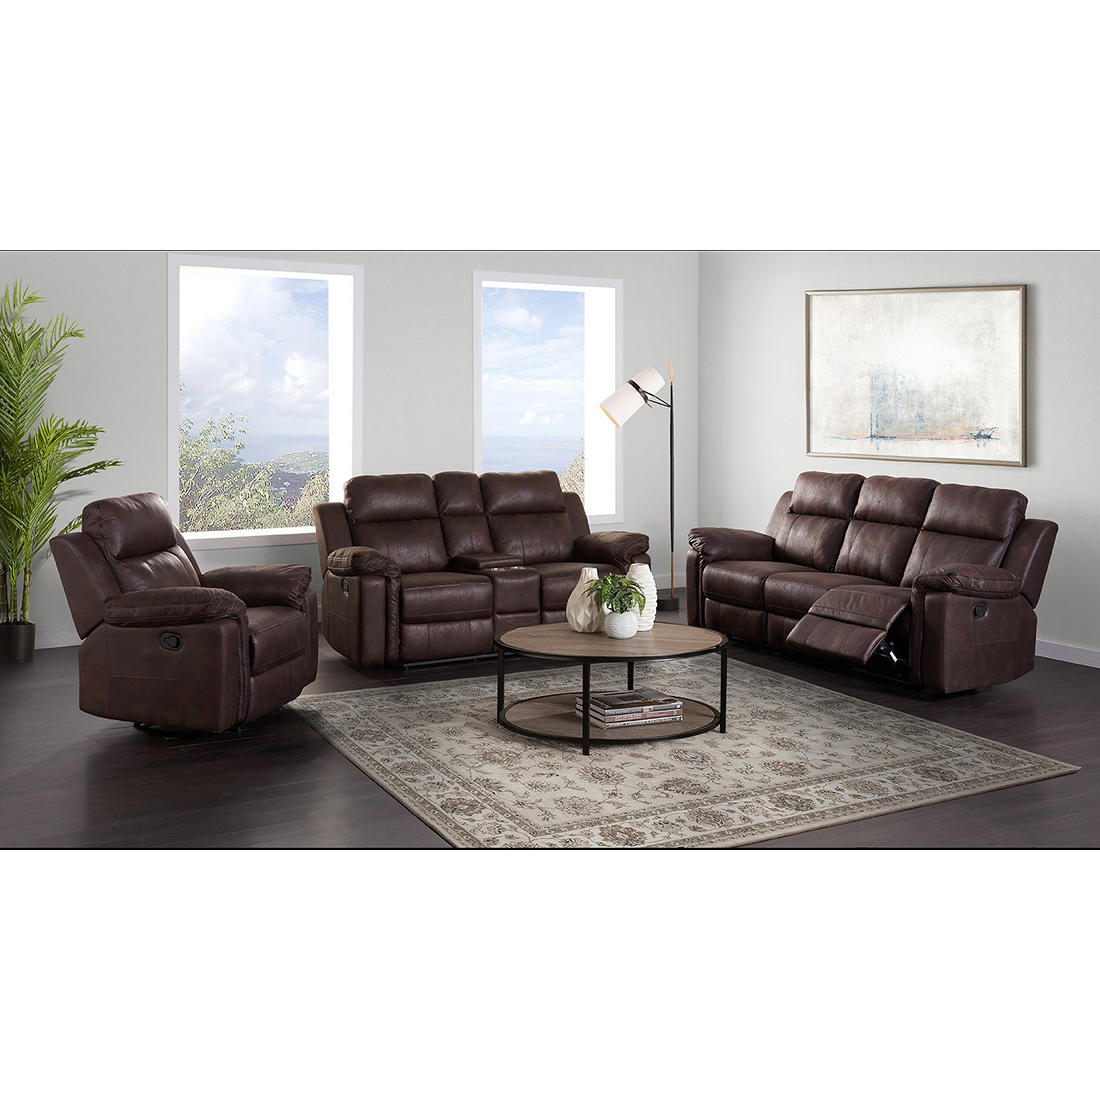 Jamestown 3-Pc. Performance Fabric Reclining Sofa Set - Chocolate Sierra